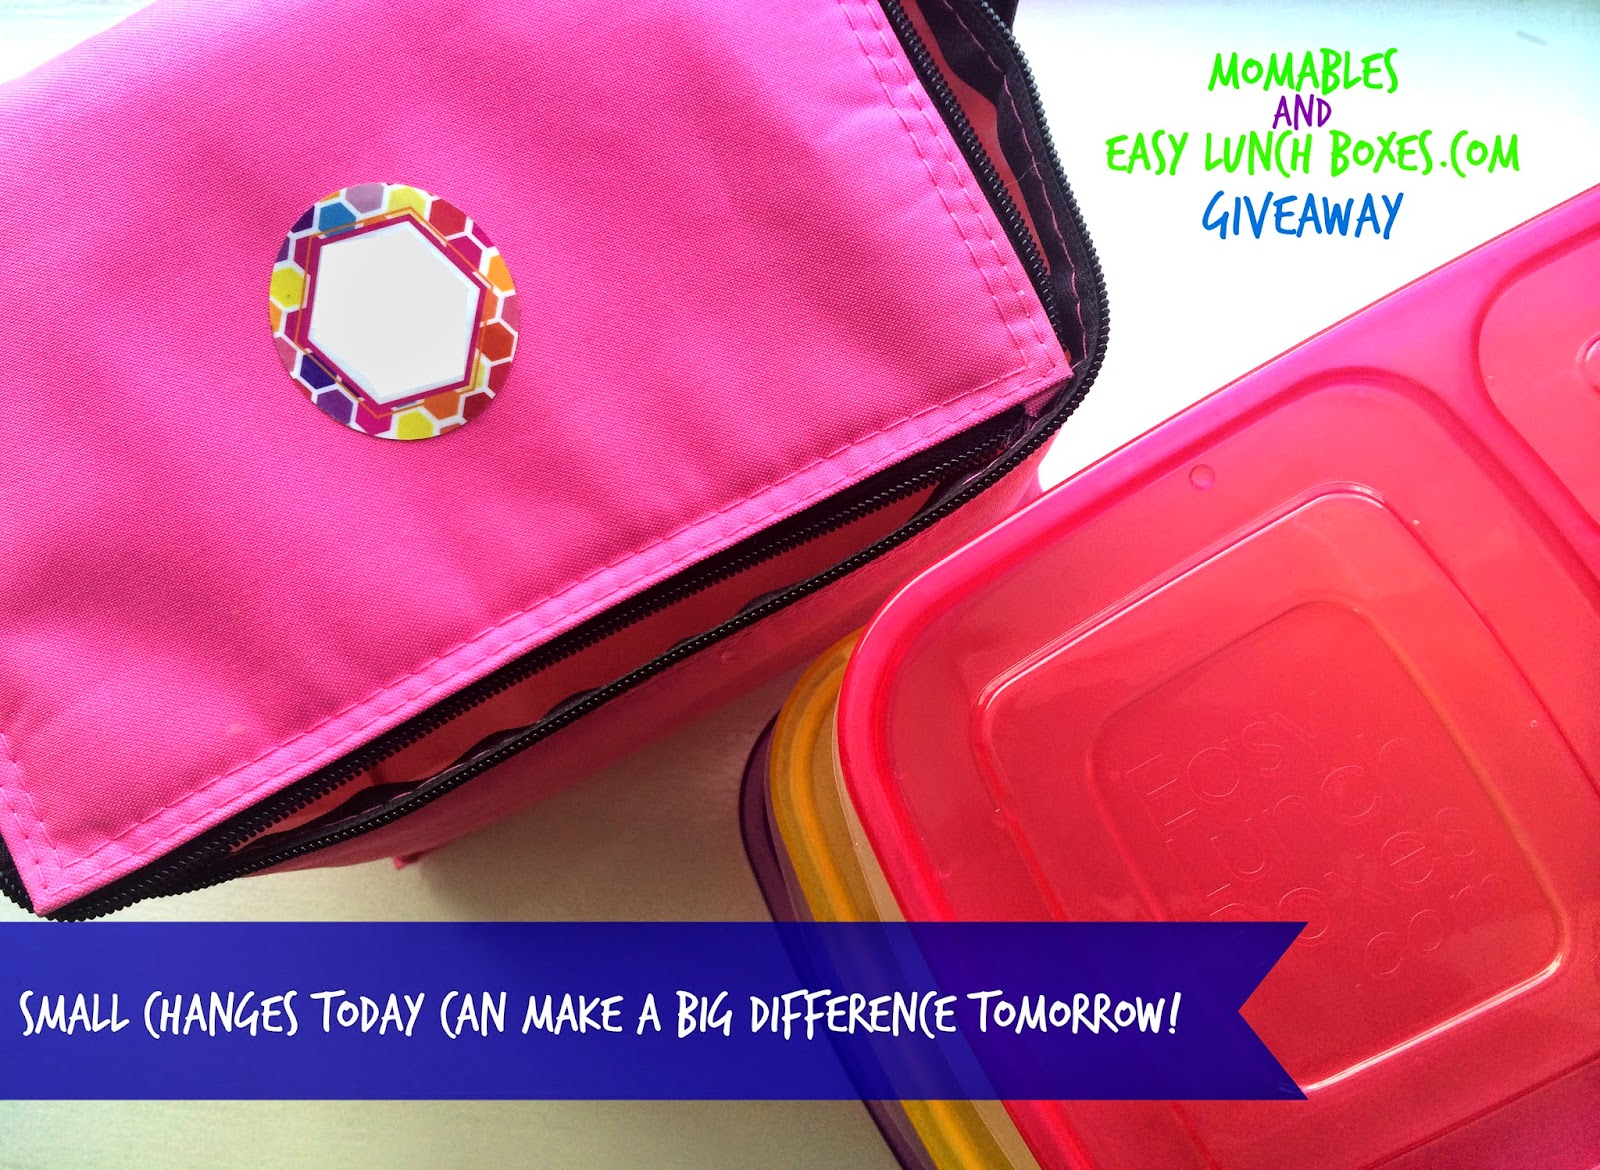 MOMables and Easylunchboxes.com 3-month subscription Giveaway